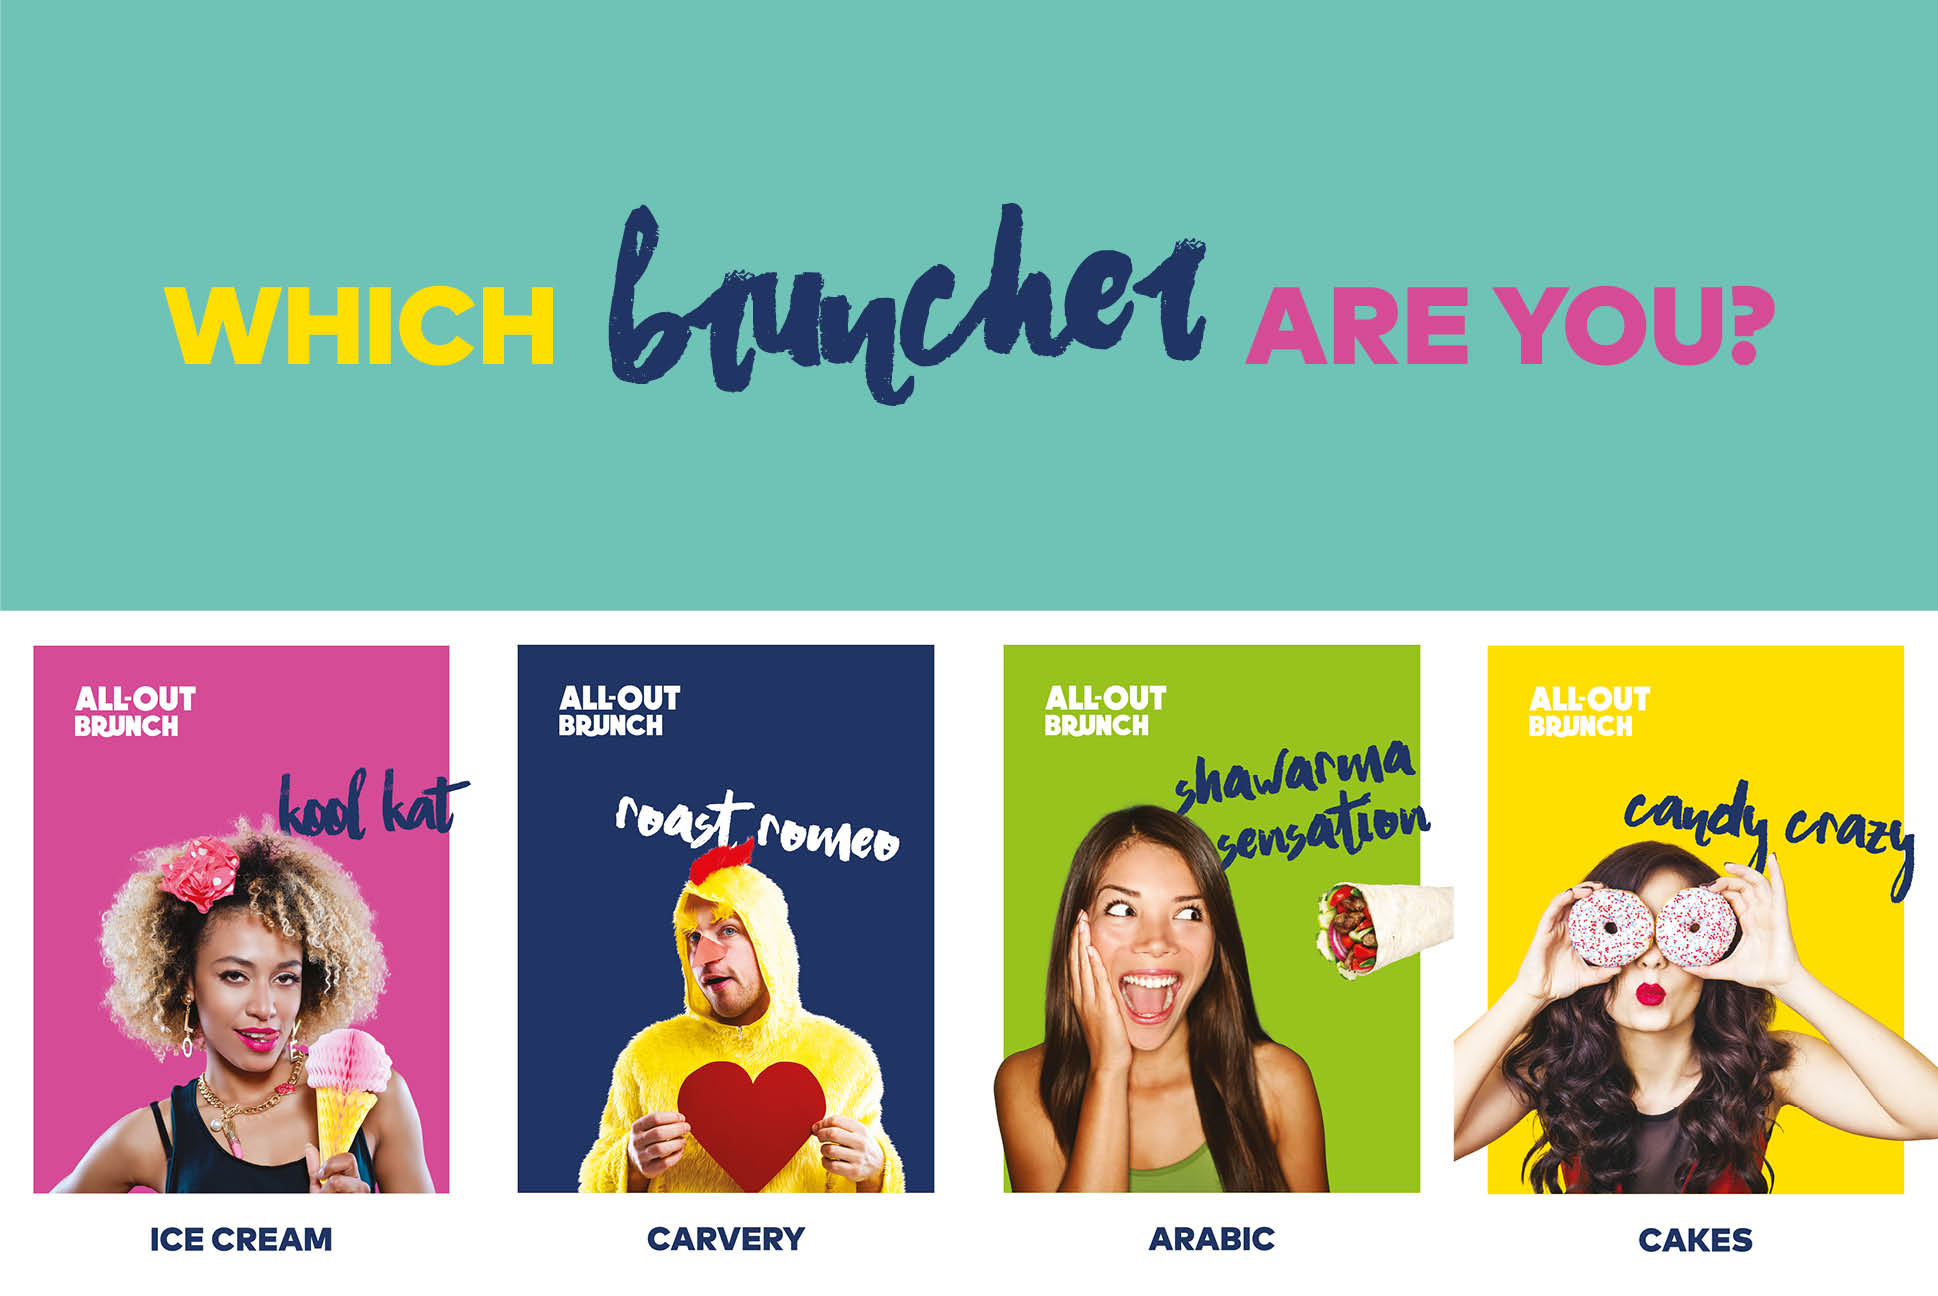 All-out Brunch Rotana Characters | All-out Brunch Poster | Amwaj Rotana | Independent Marketing Campaign & Advertising Services | IM London